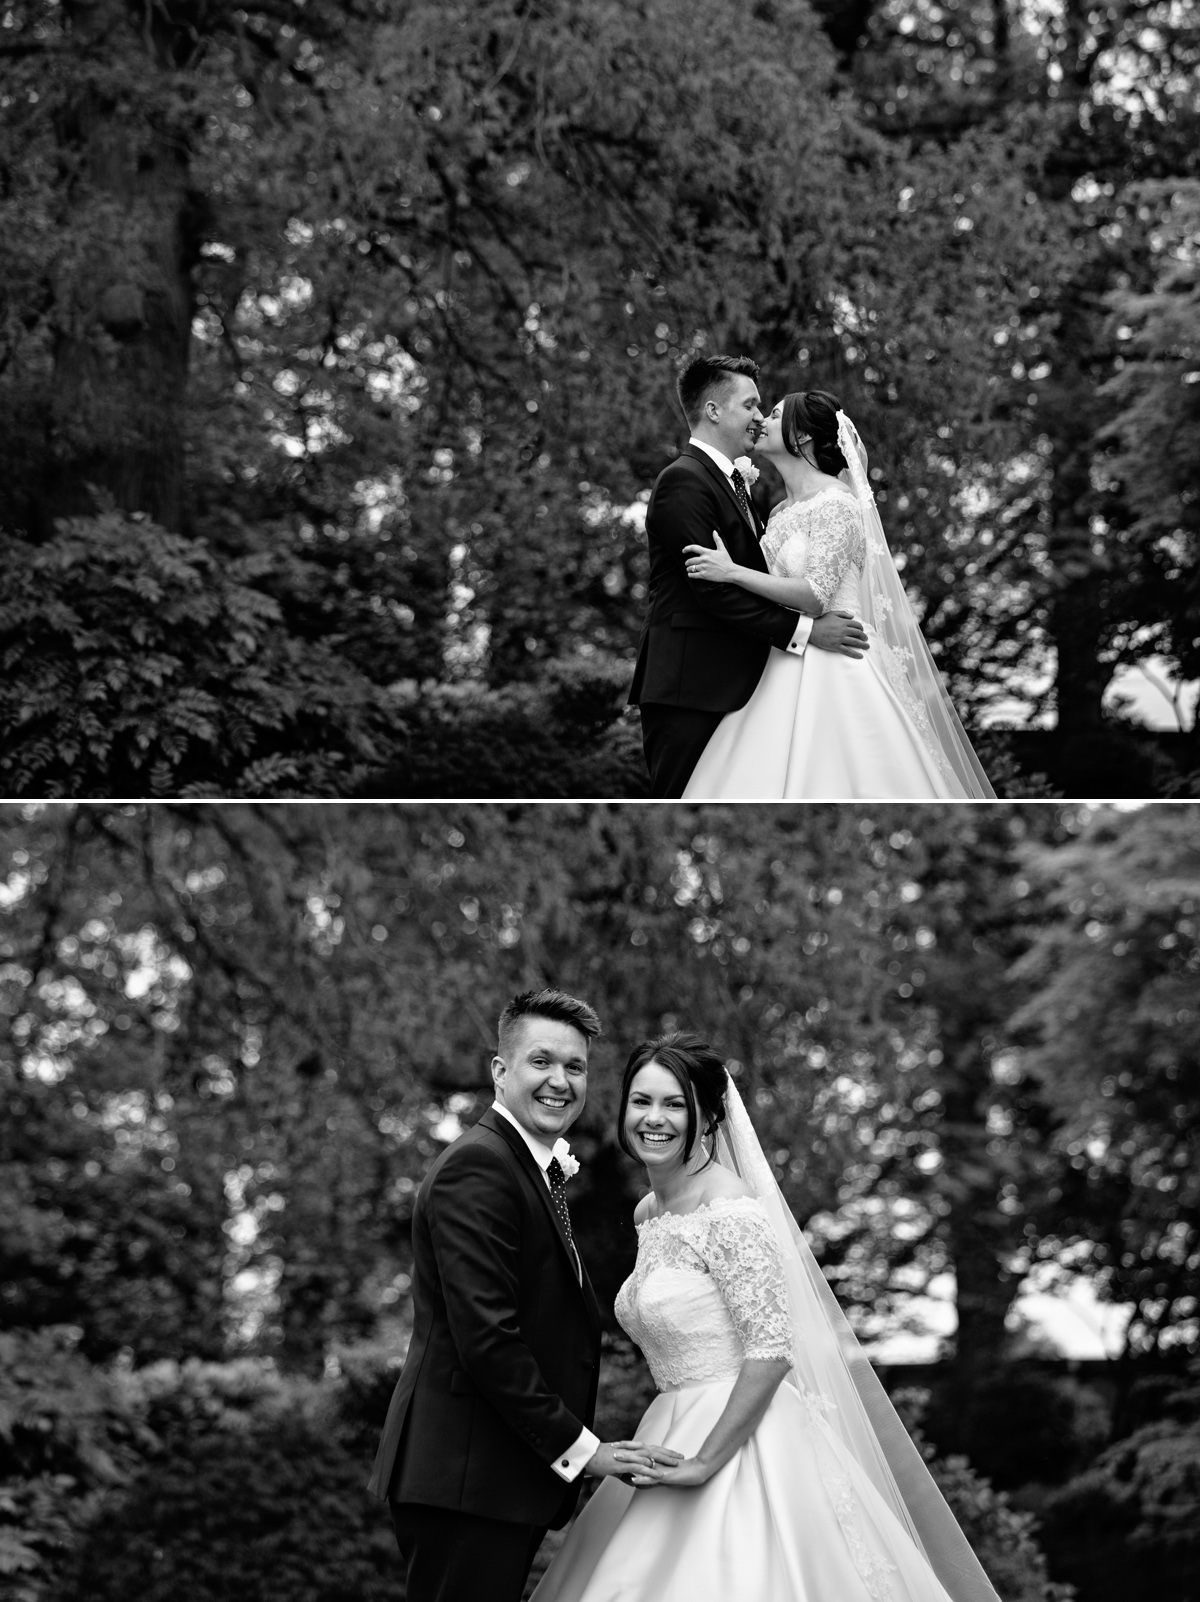 Bride and Groom share fun moment in the wedding venue grounds